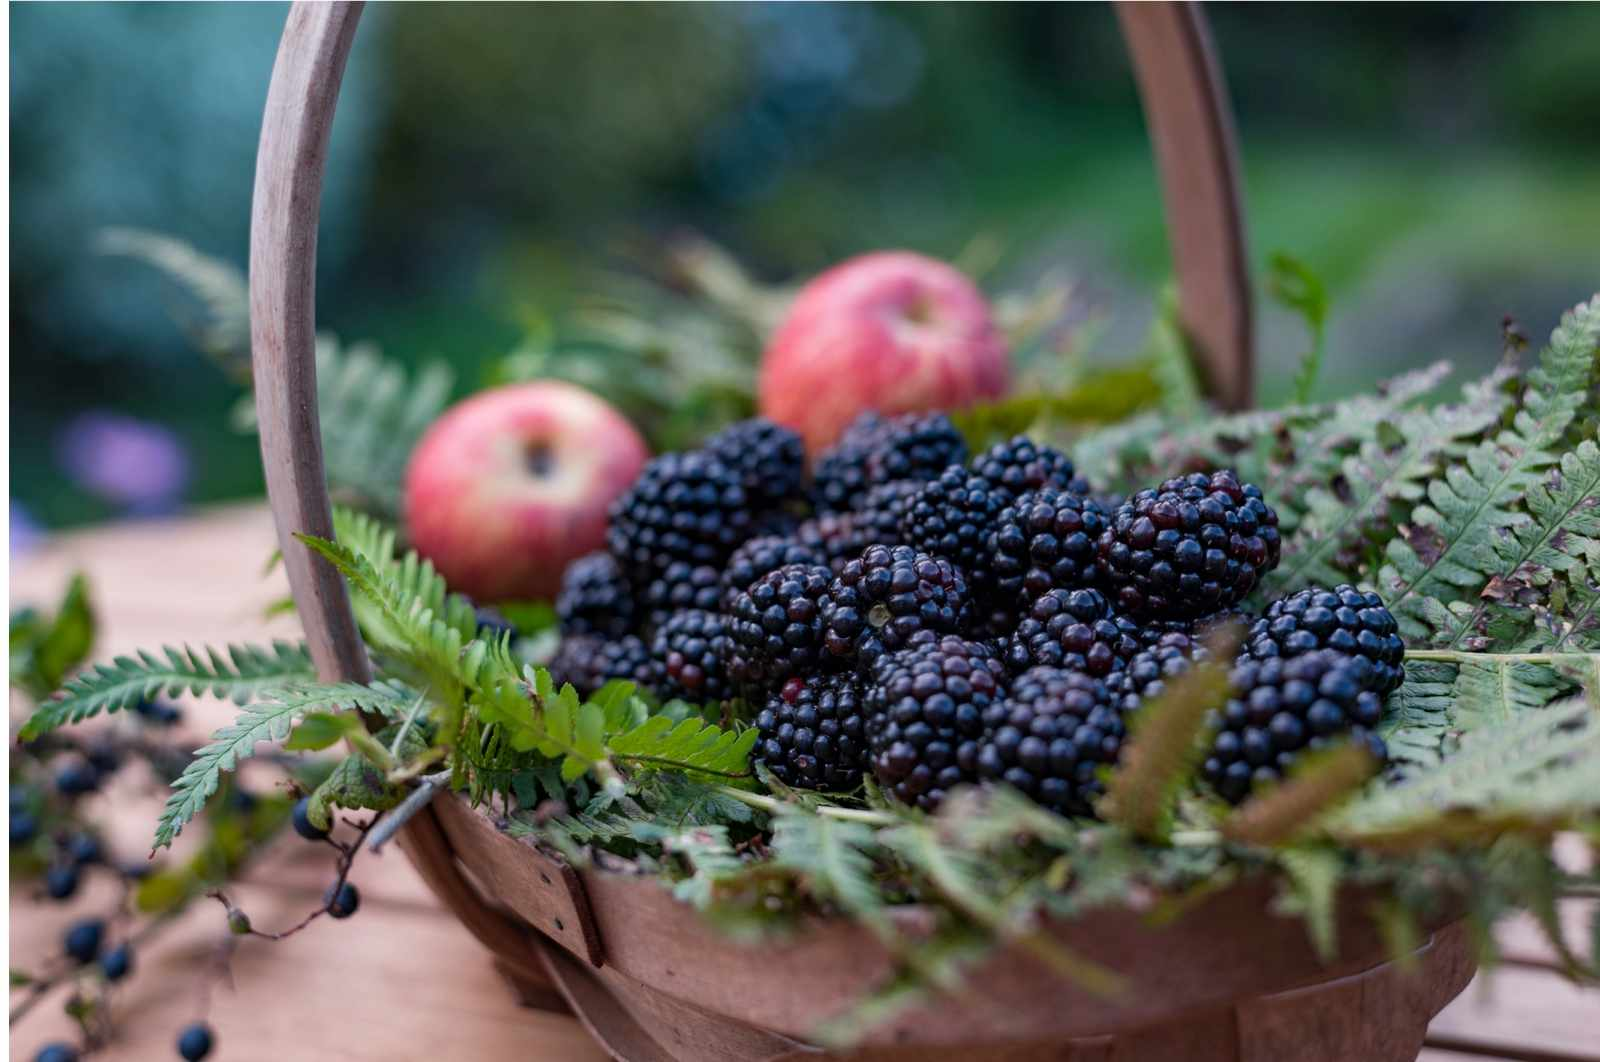 blackberries-and-apples-b430185